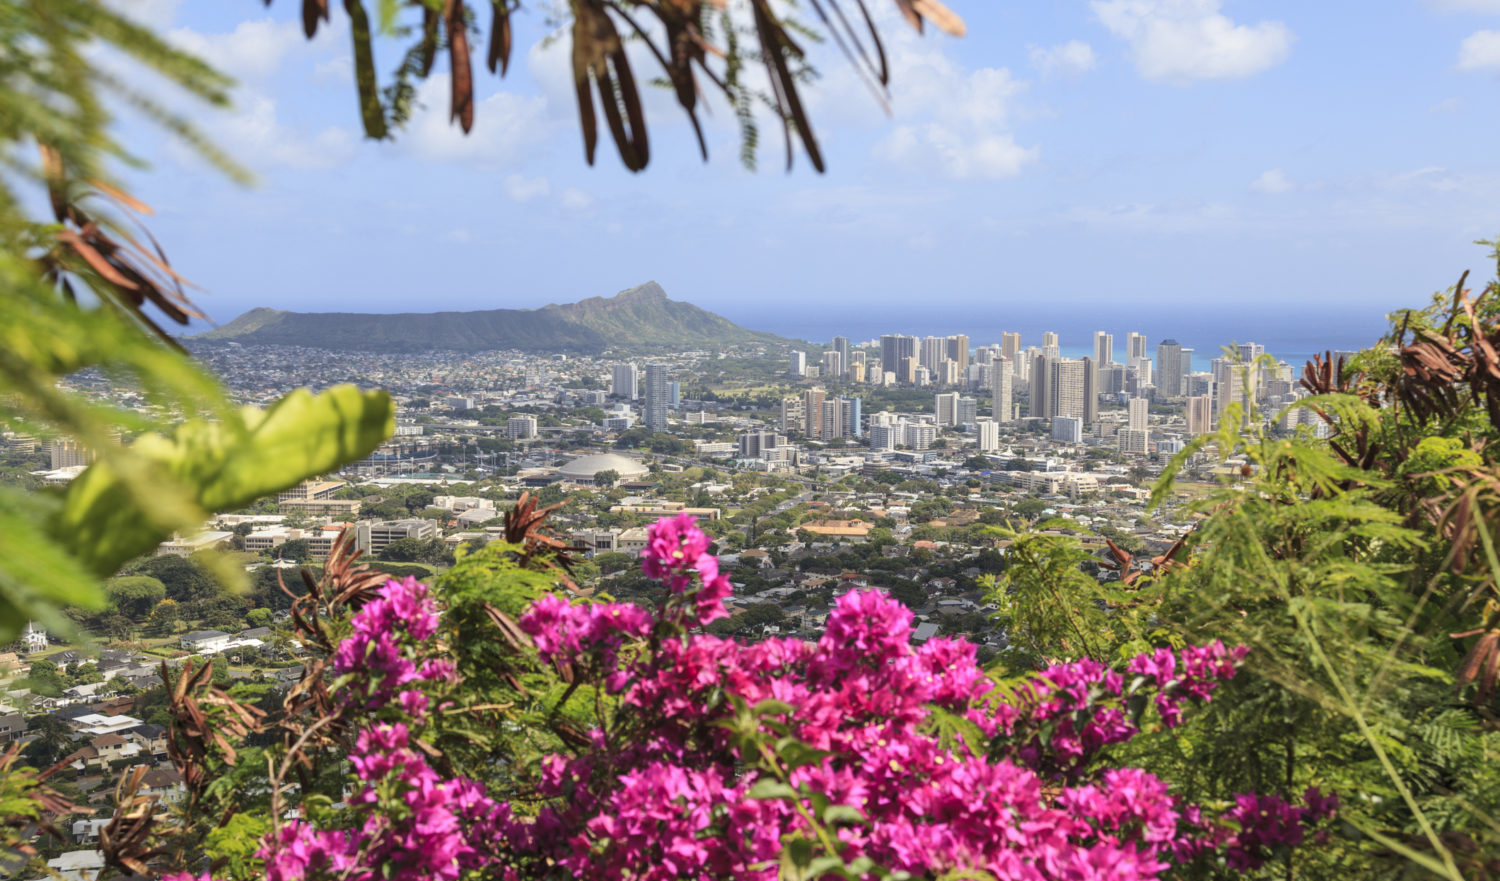 A view of Diamond Head and the Waikiki skyline from above.